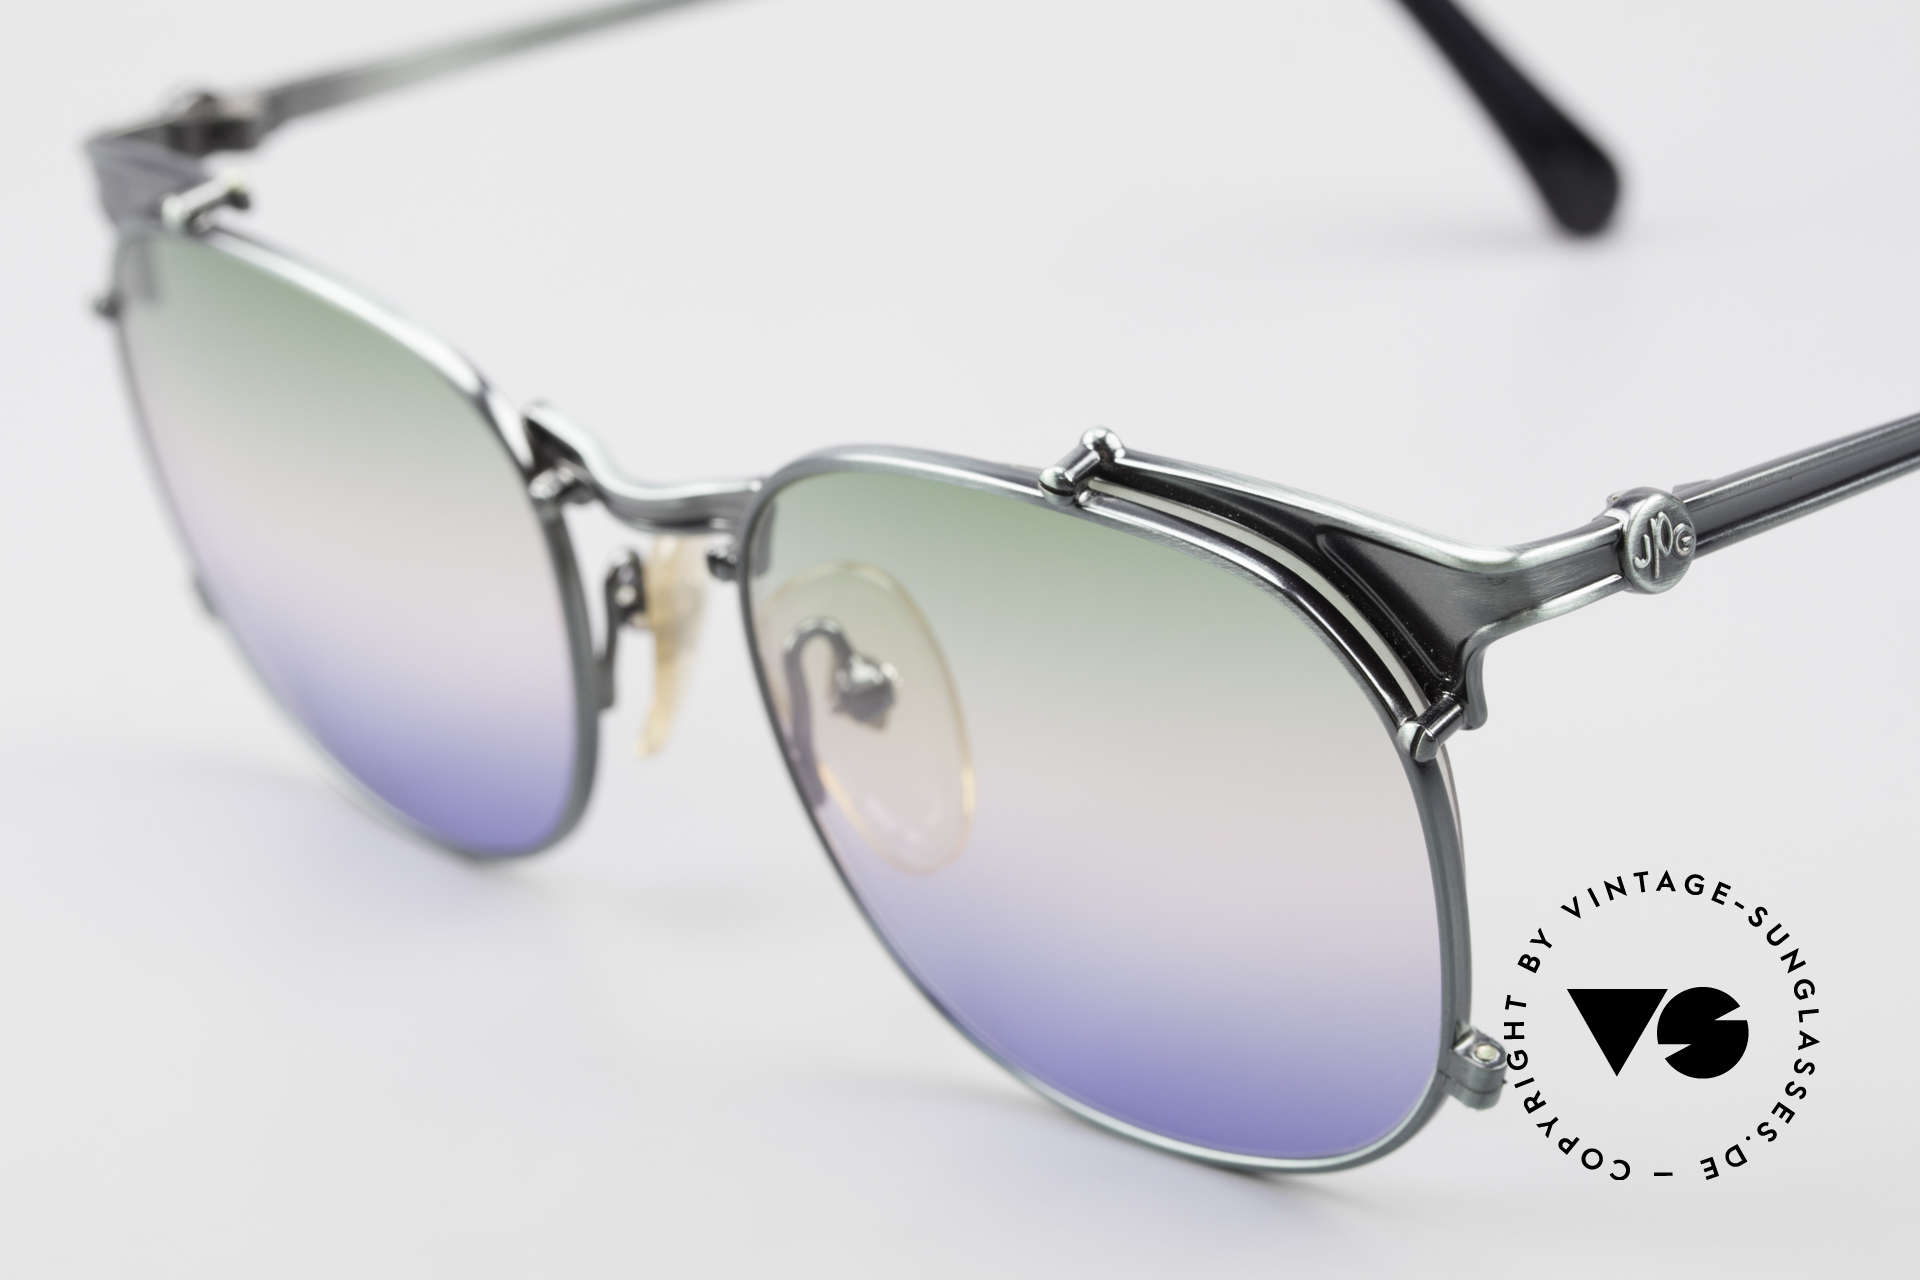 Jean Paul Gaultier 56-2175 Rare Tricolored Sun Lenses, green/rosé/blue coloring; something different!, Made for Men and Women